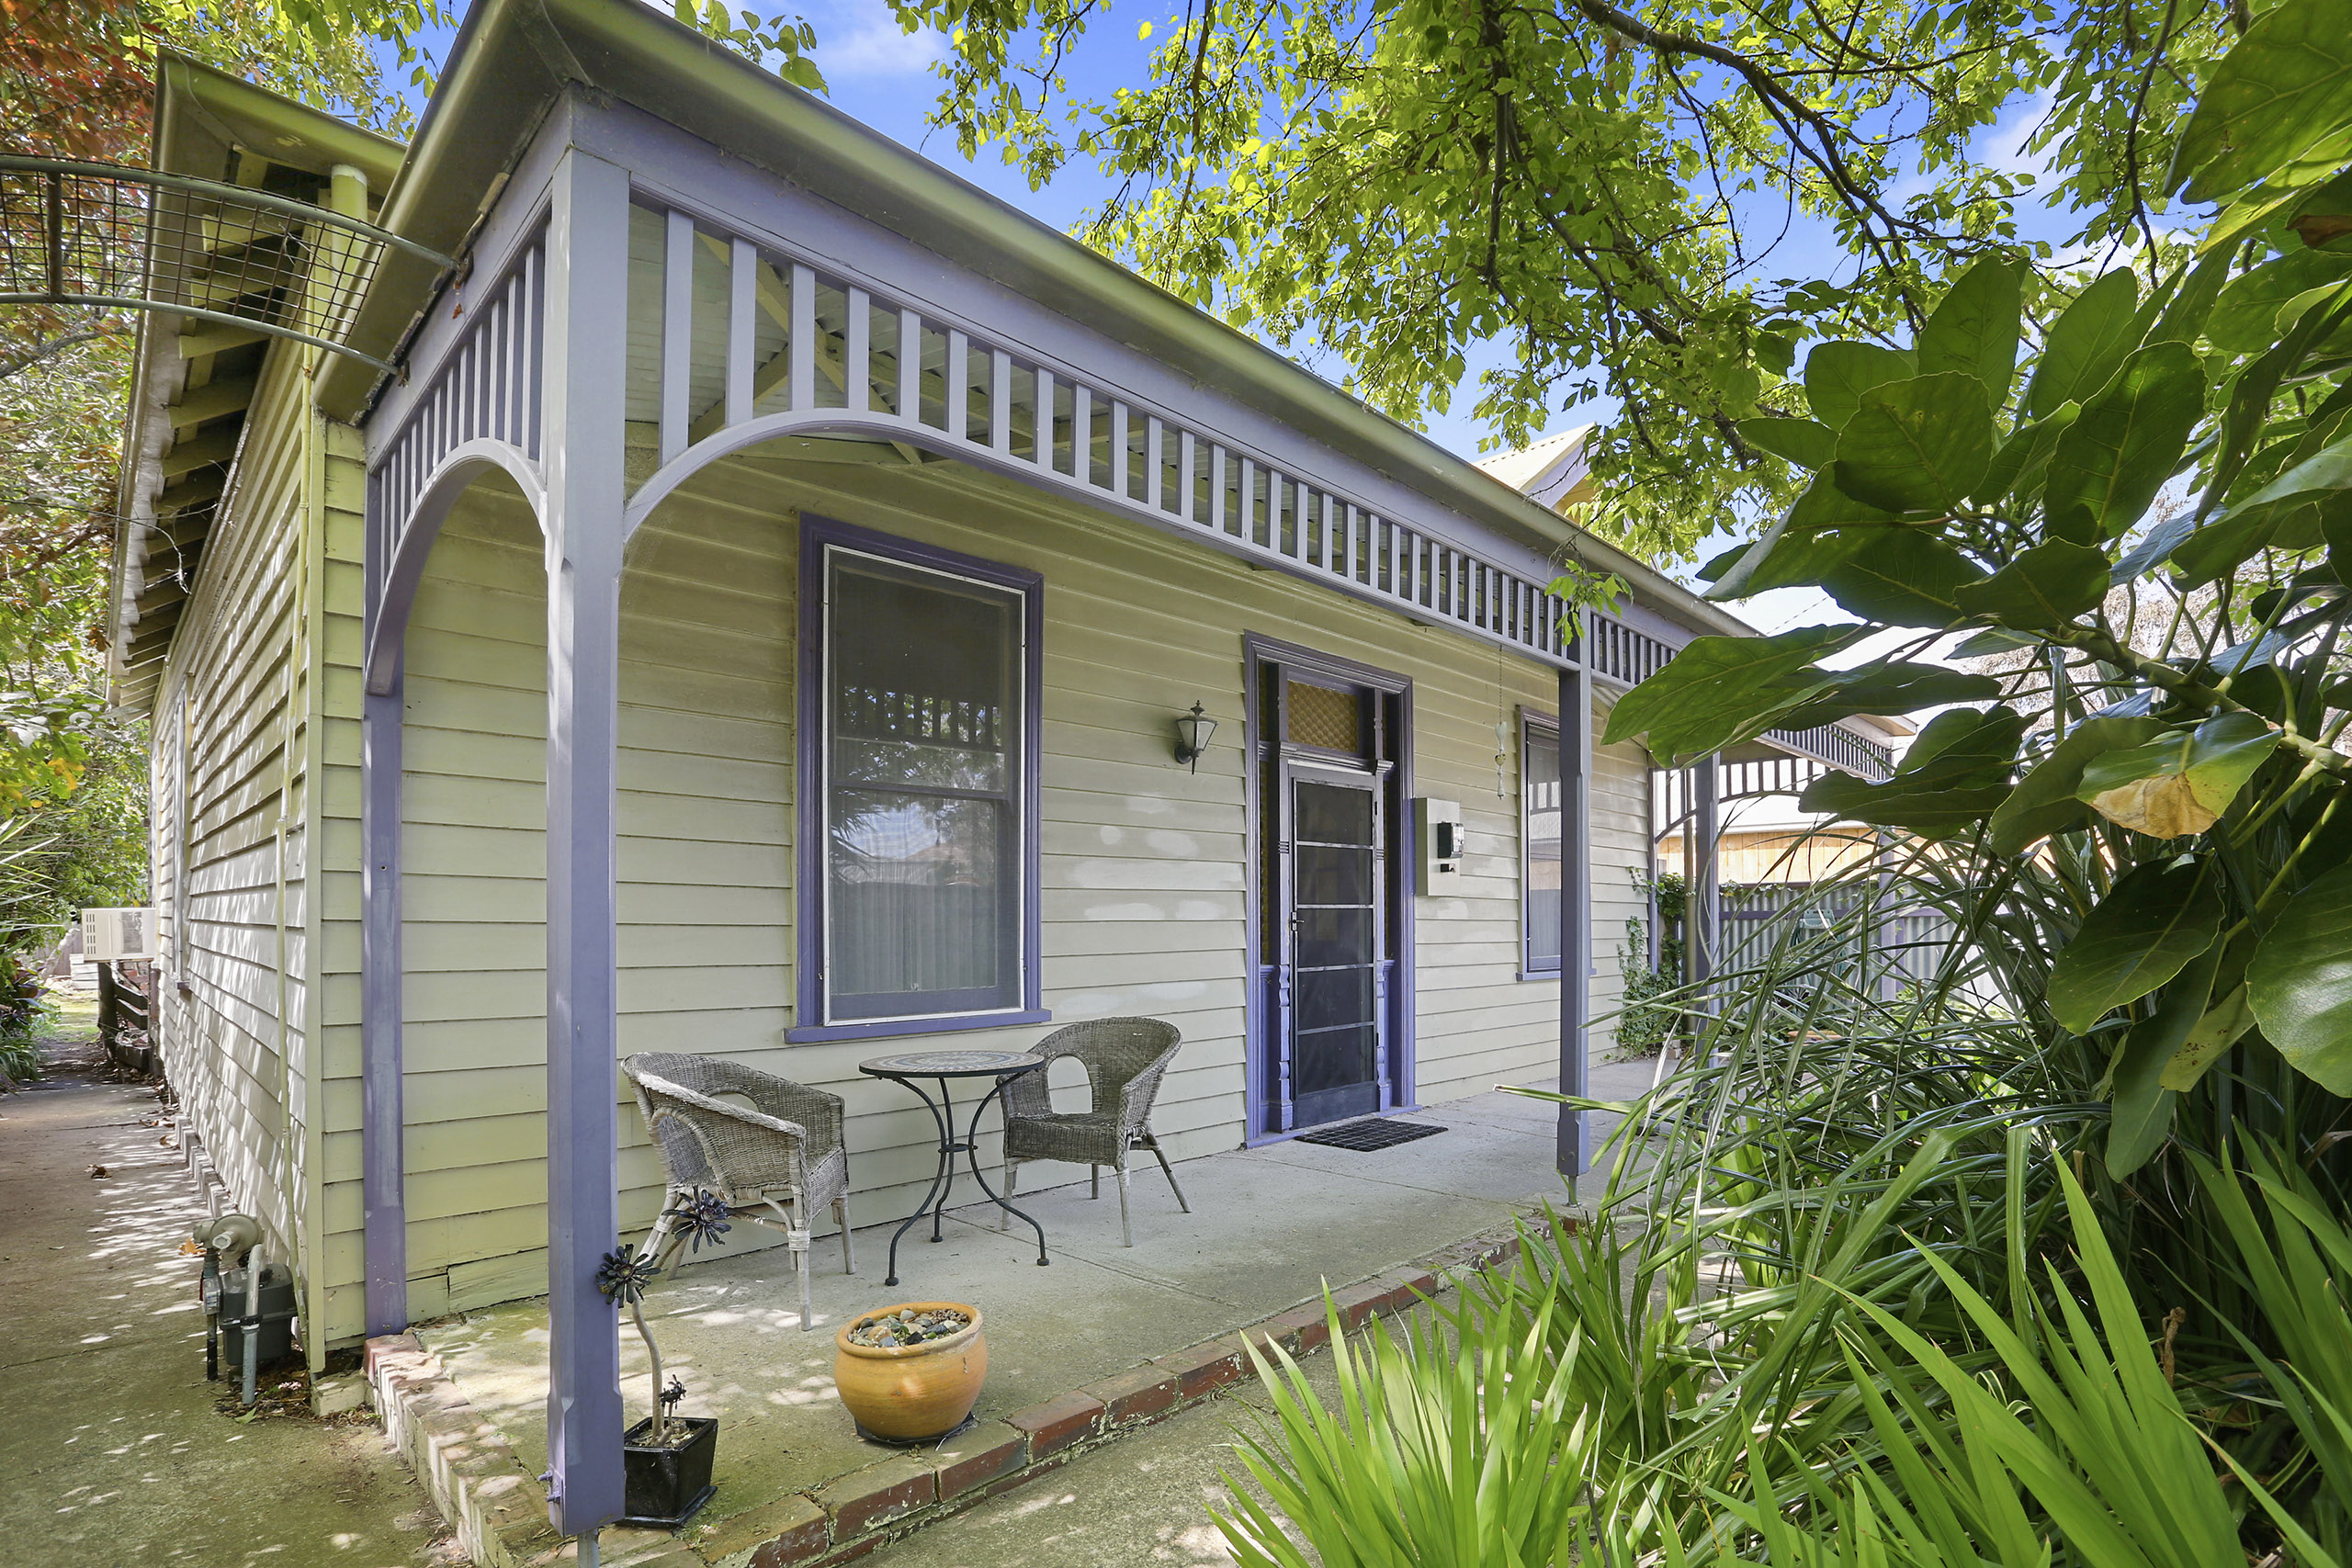 Property Report for 2 Petrel Street, Geelong West VIC 3218